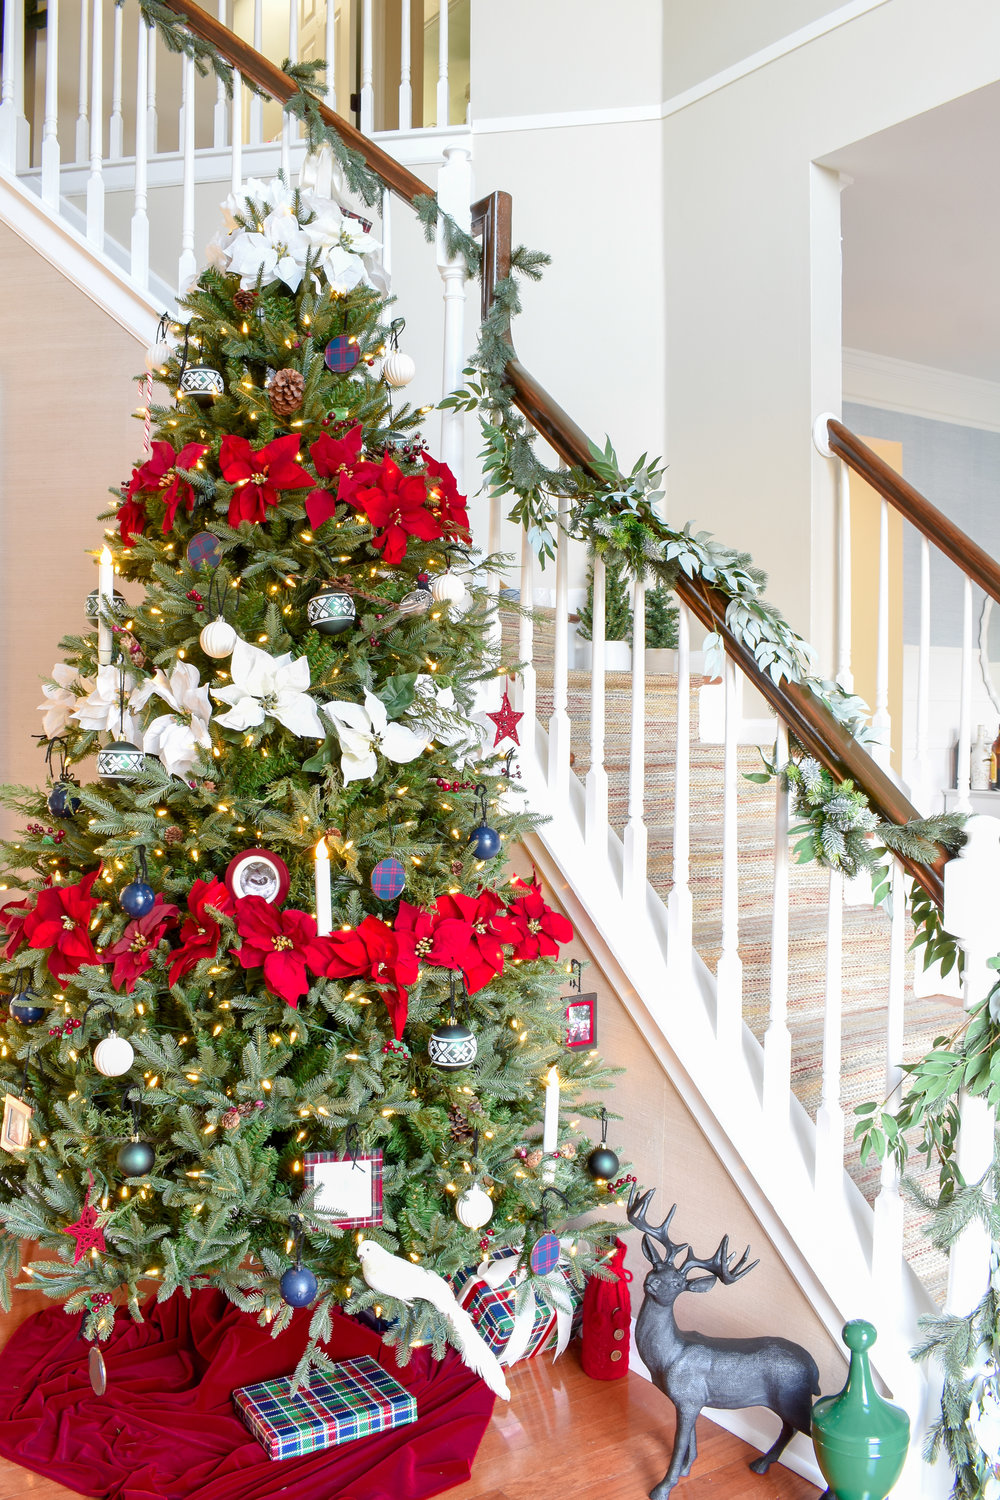 Christmas Home Tour: How To Decorate with Traditional Holiday Decor On A Budget | A traditional Christmas tree in the foyer adds festive cheer to a neutral space. #redandwhitechristmas #christmastree #traditionalchristmas